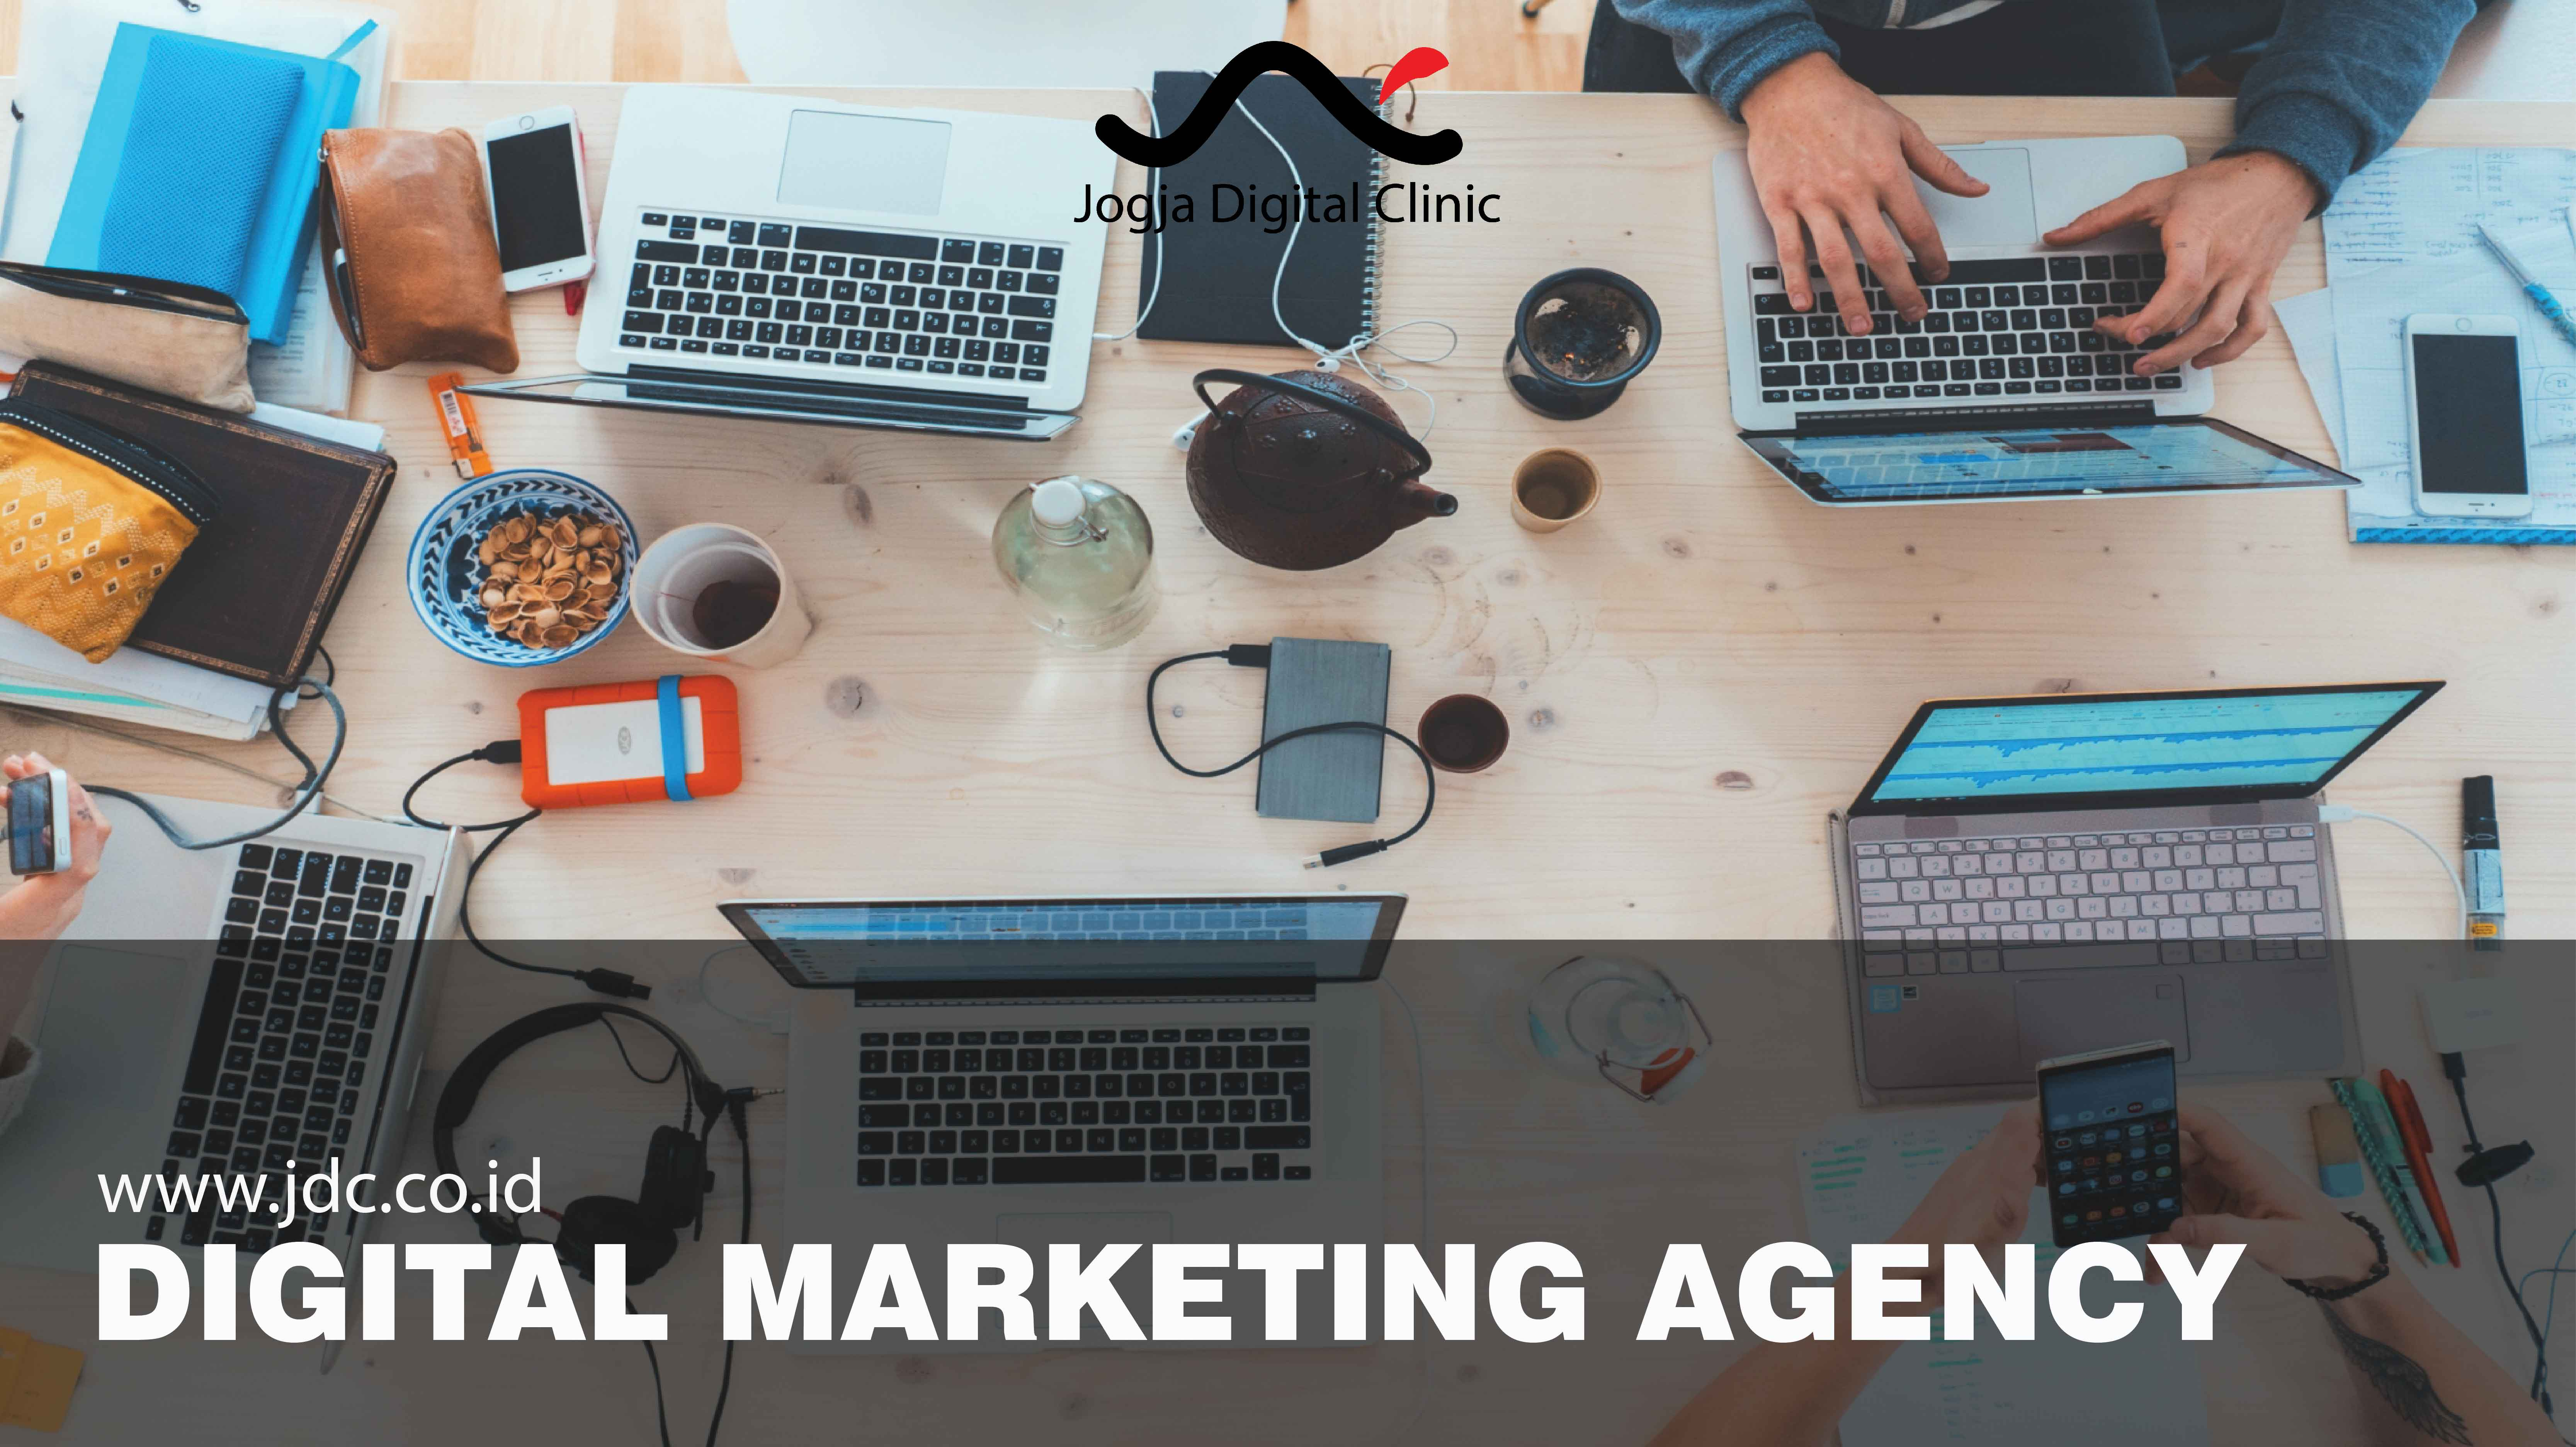 digital marketing agency jdc